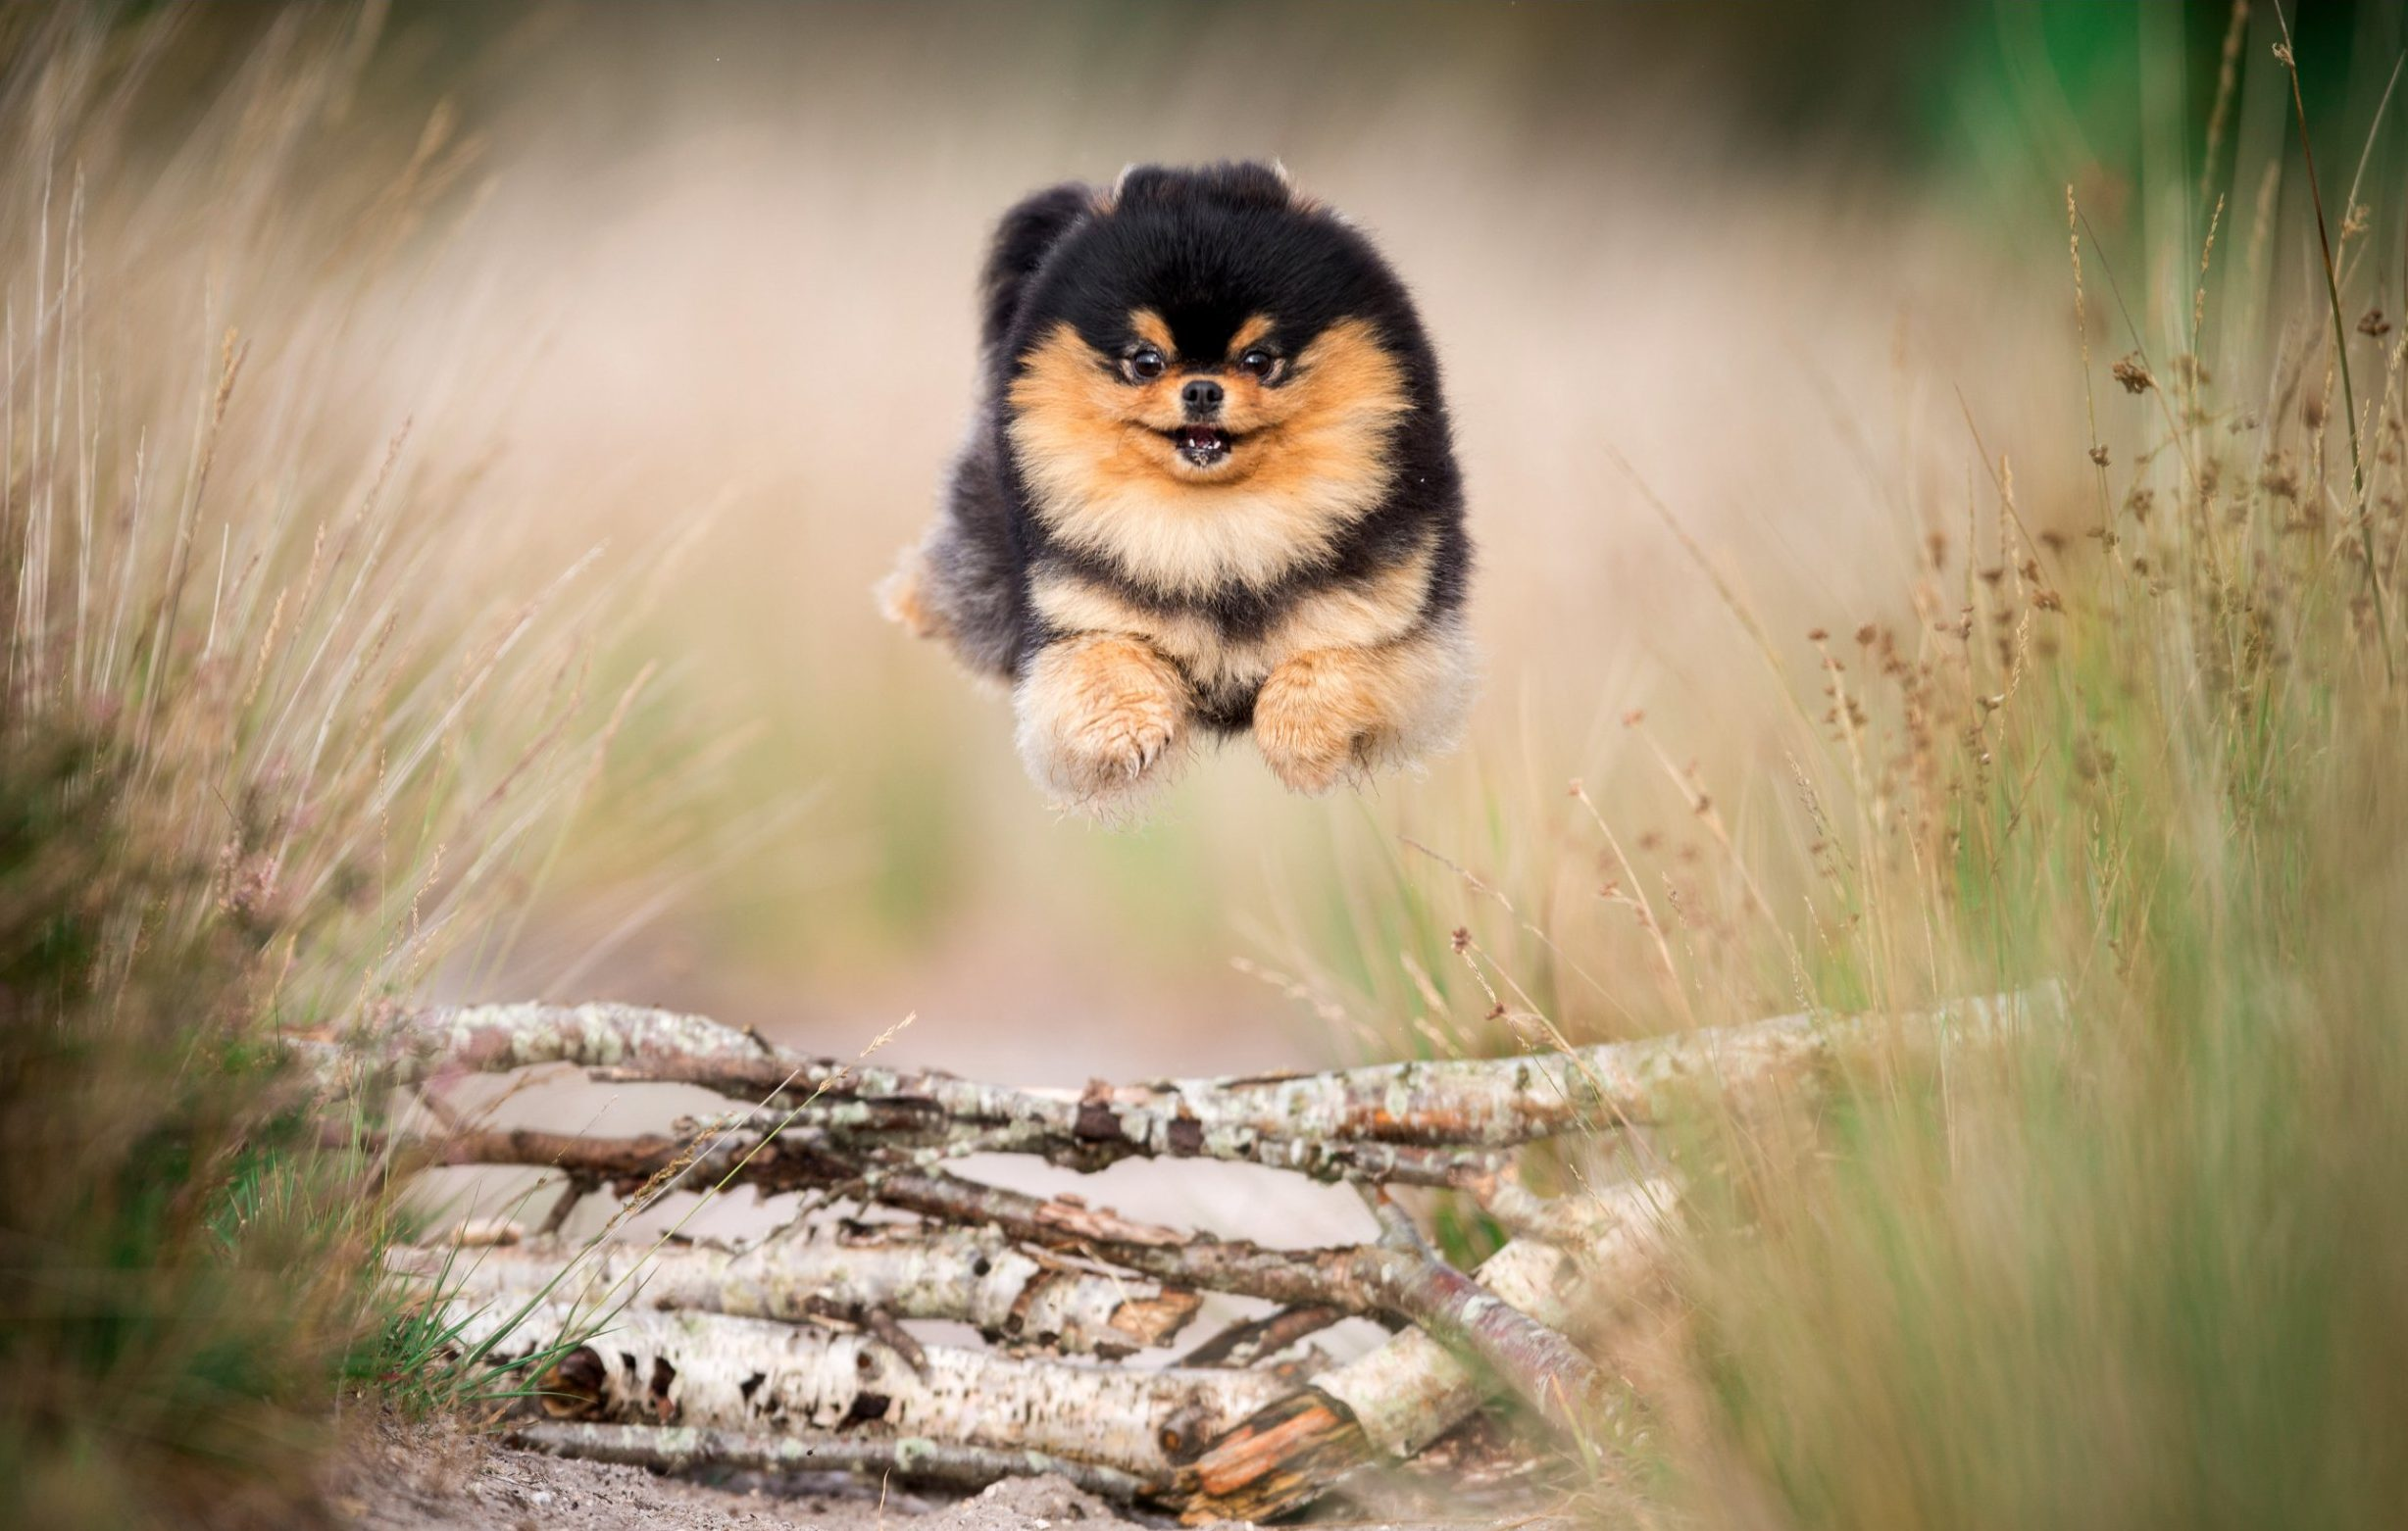 BNPS.co.uk (01202 558833) Pic: ABillionClicks/BNPS Up, pup and away! Buzz the Pomeranian. A spectacular new collection of photographs has been revealed showing joyous dogs 'flying' through the air in the forest. The charming snaps, taken by amateur photographer Daniel Sheridan, show spaniels, bull dogs and even huskies hurtling over obstacles in the woods. The shots were taken by luring the pooches in with treats, along with a large amount of trial and error.